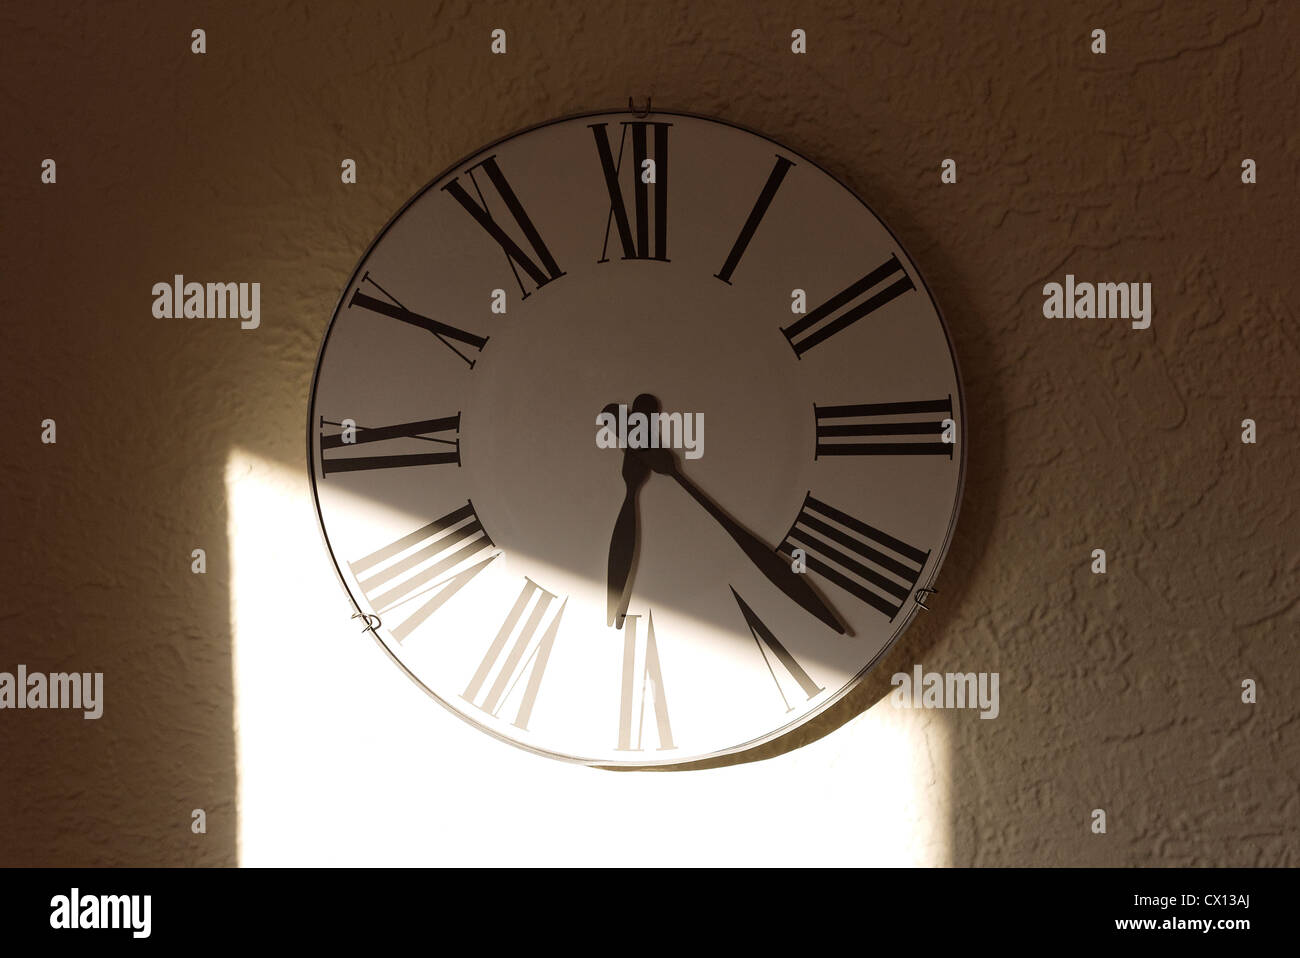 Sunlight and shadow on a traditional clock face - Stock Image